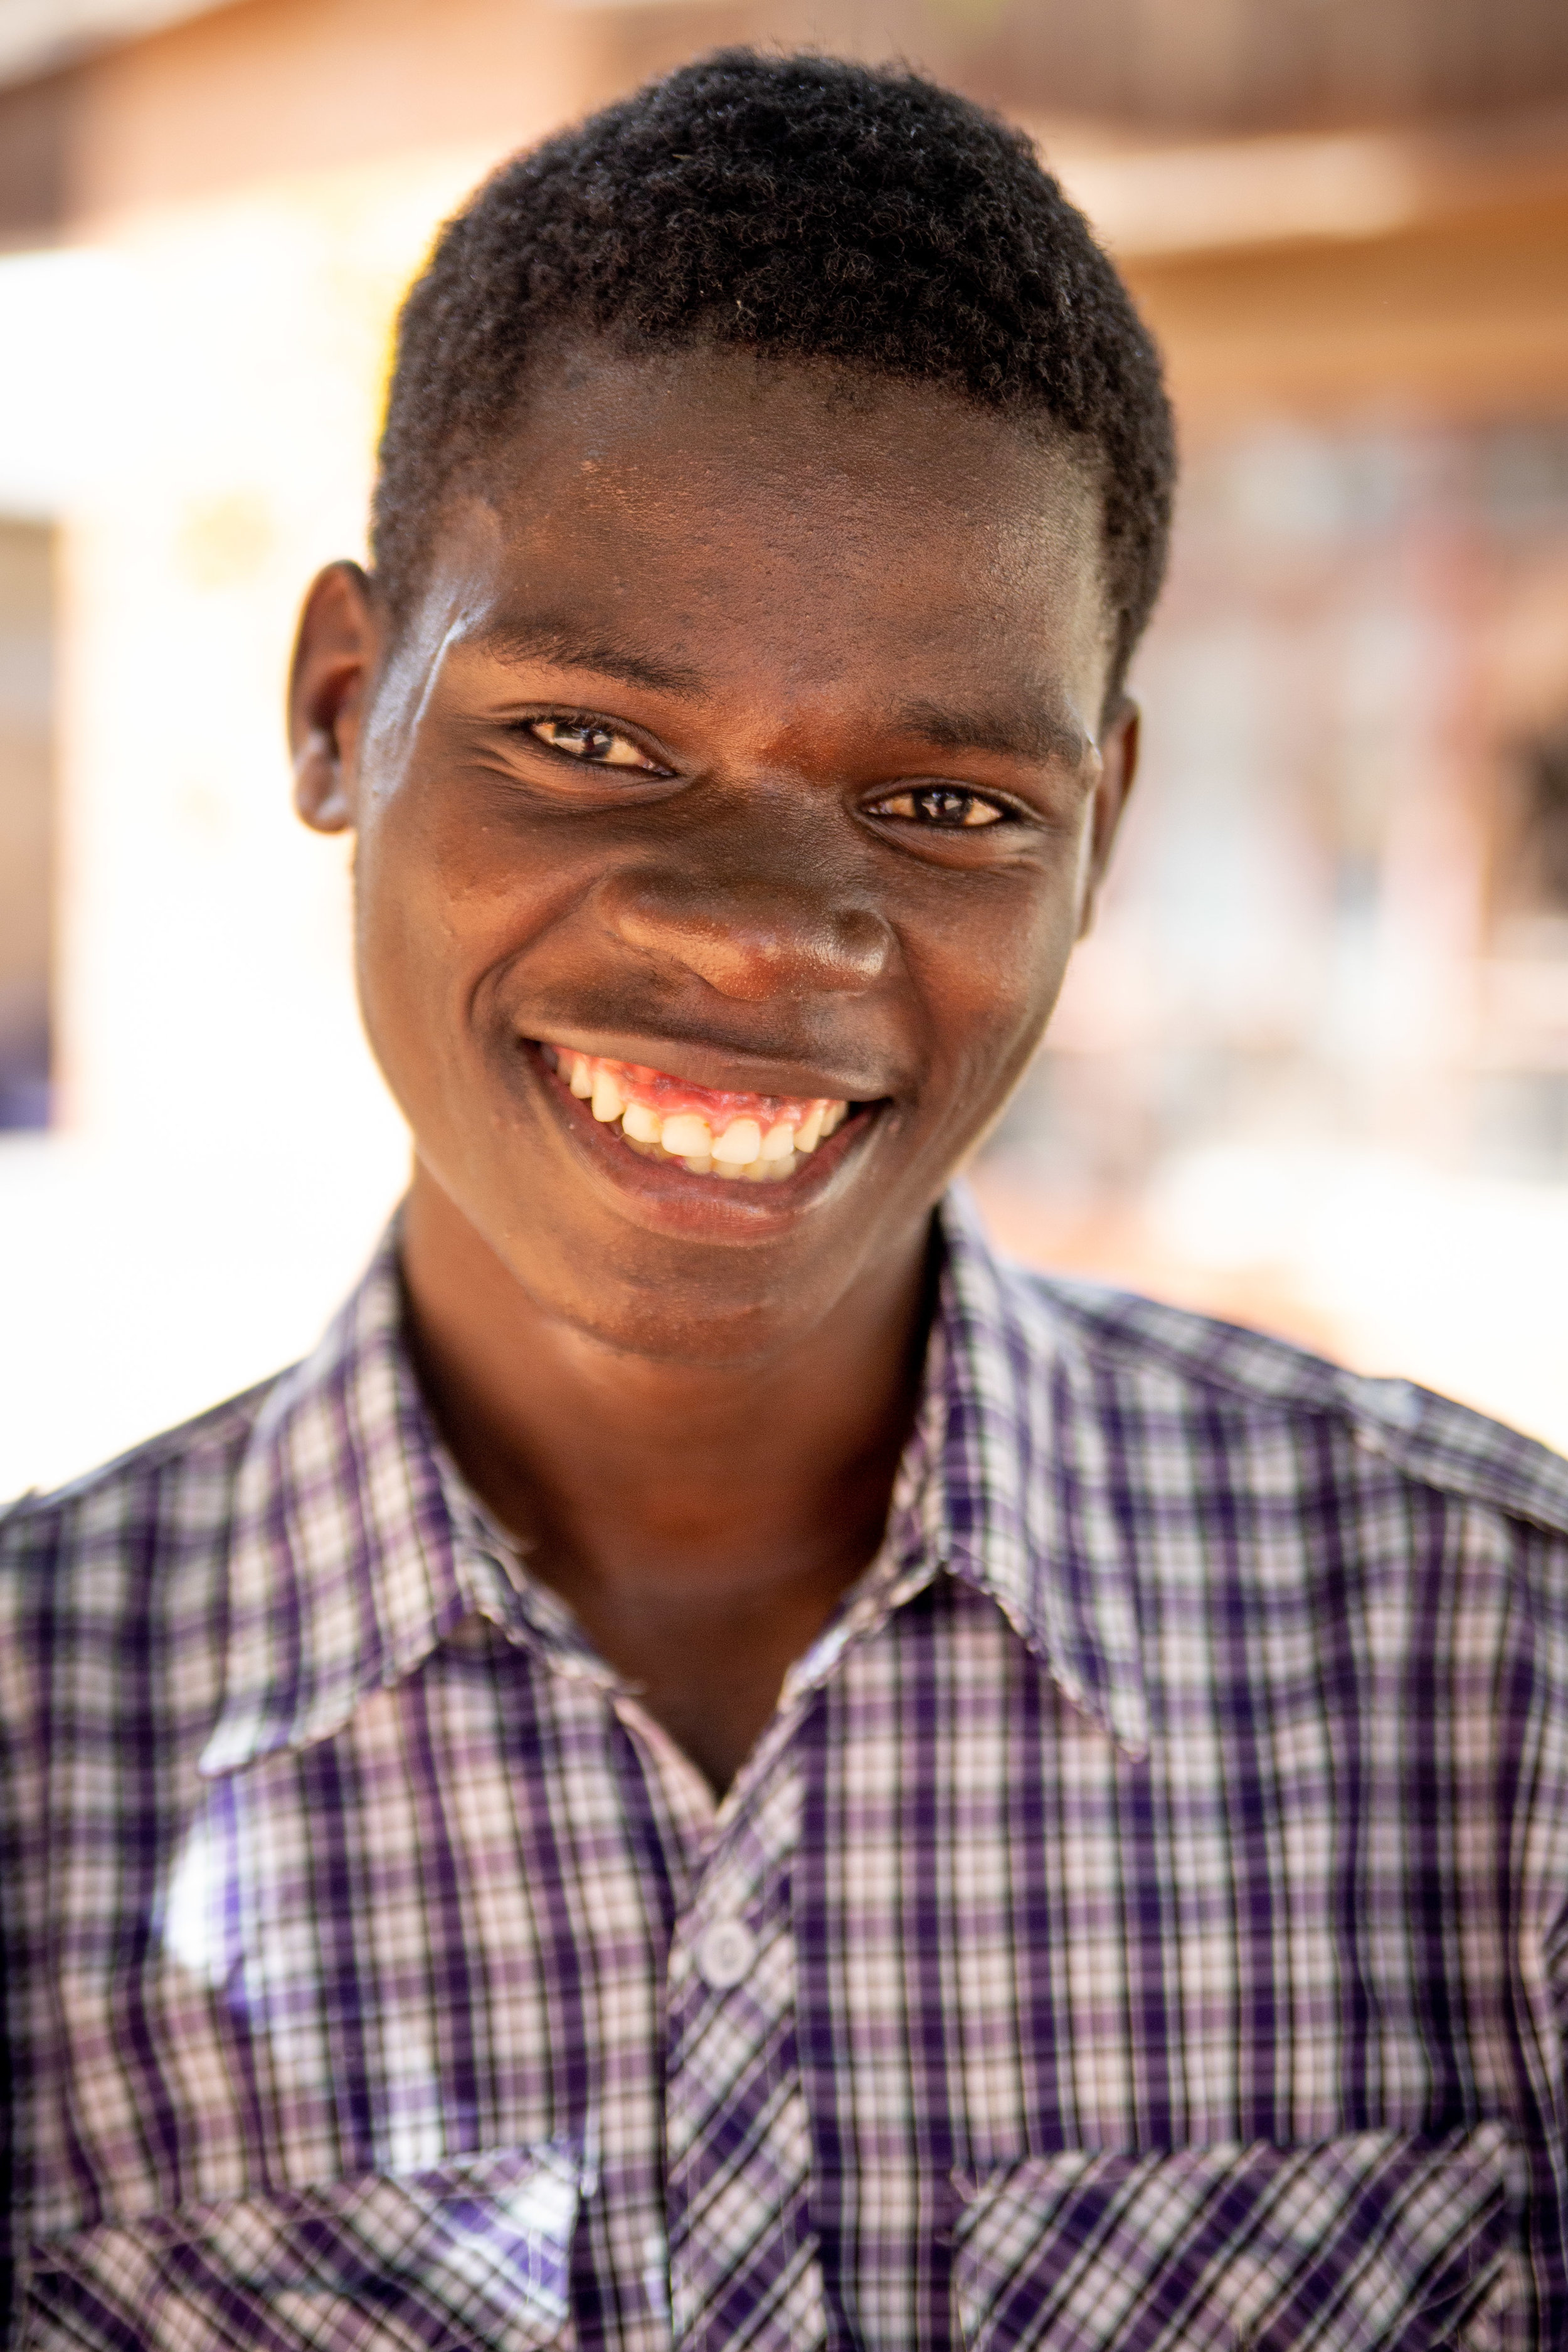 Alexandre's family has provided a college scholarship for Peter who is studying at the Kafue Institute of Health Sciences.